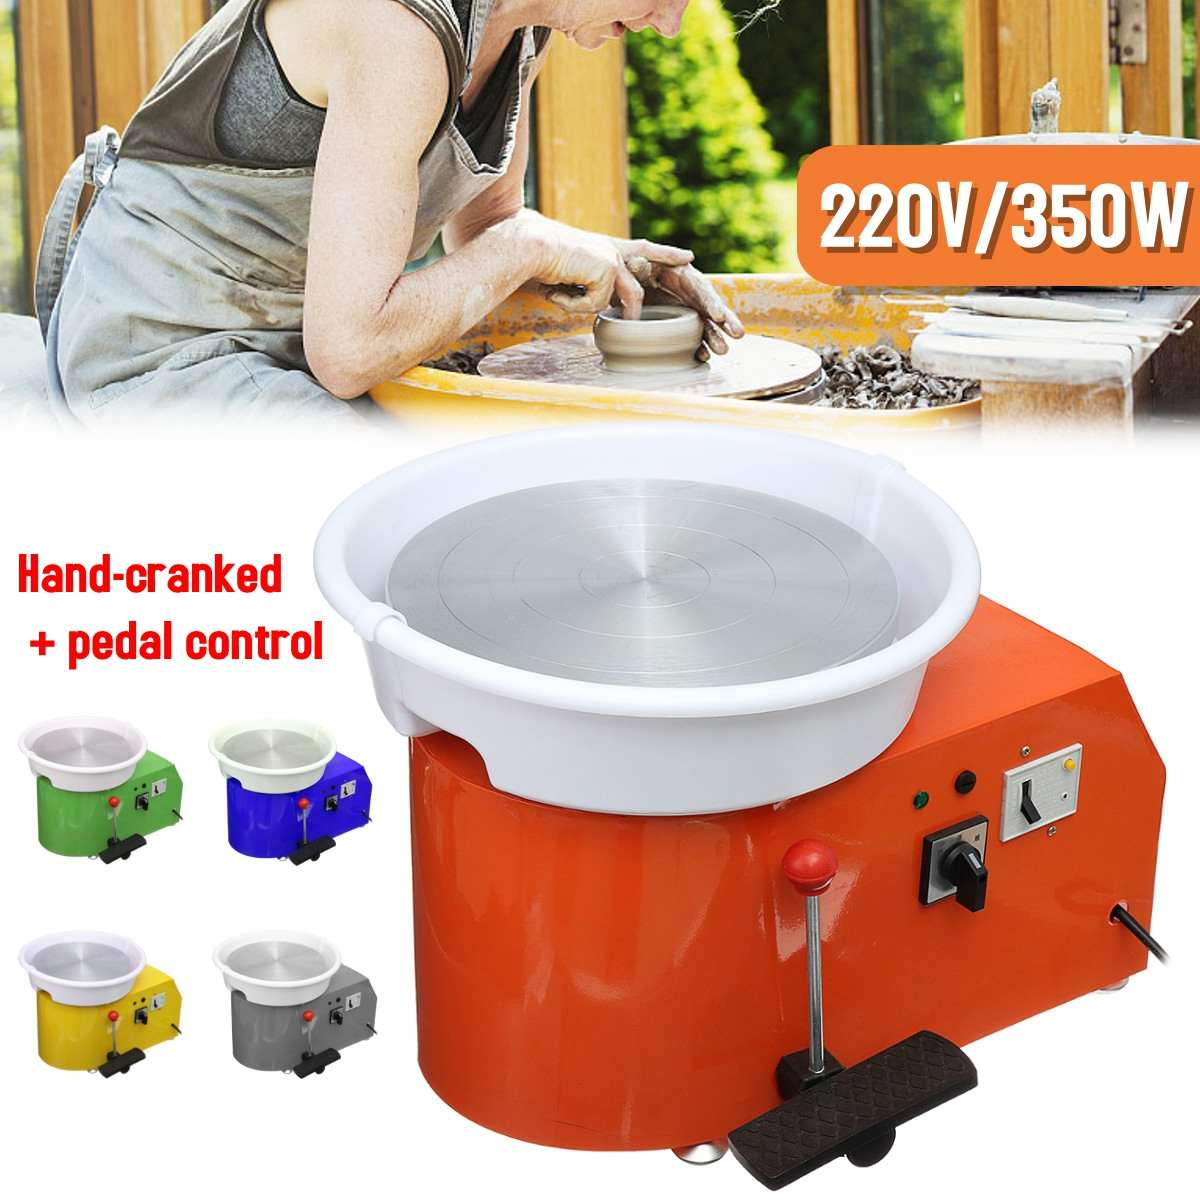 Wheel-Machine Hand-Cranked Pottery With Mobile-Smooth Low-Noise 32cm 220V Pedal-Control